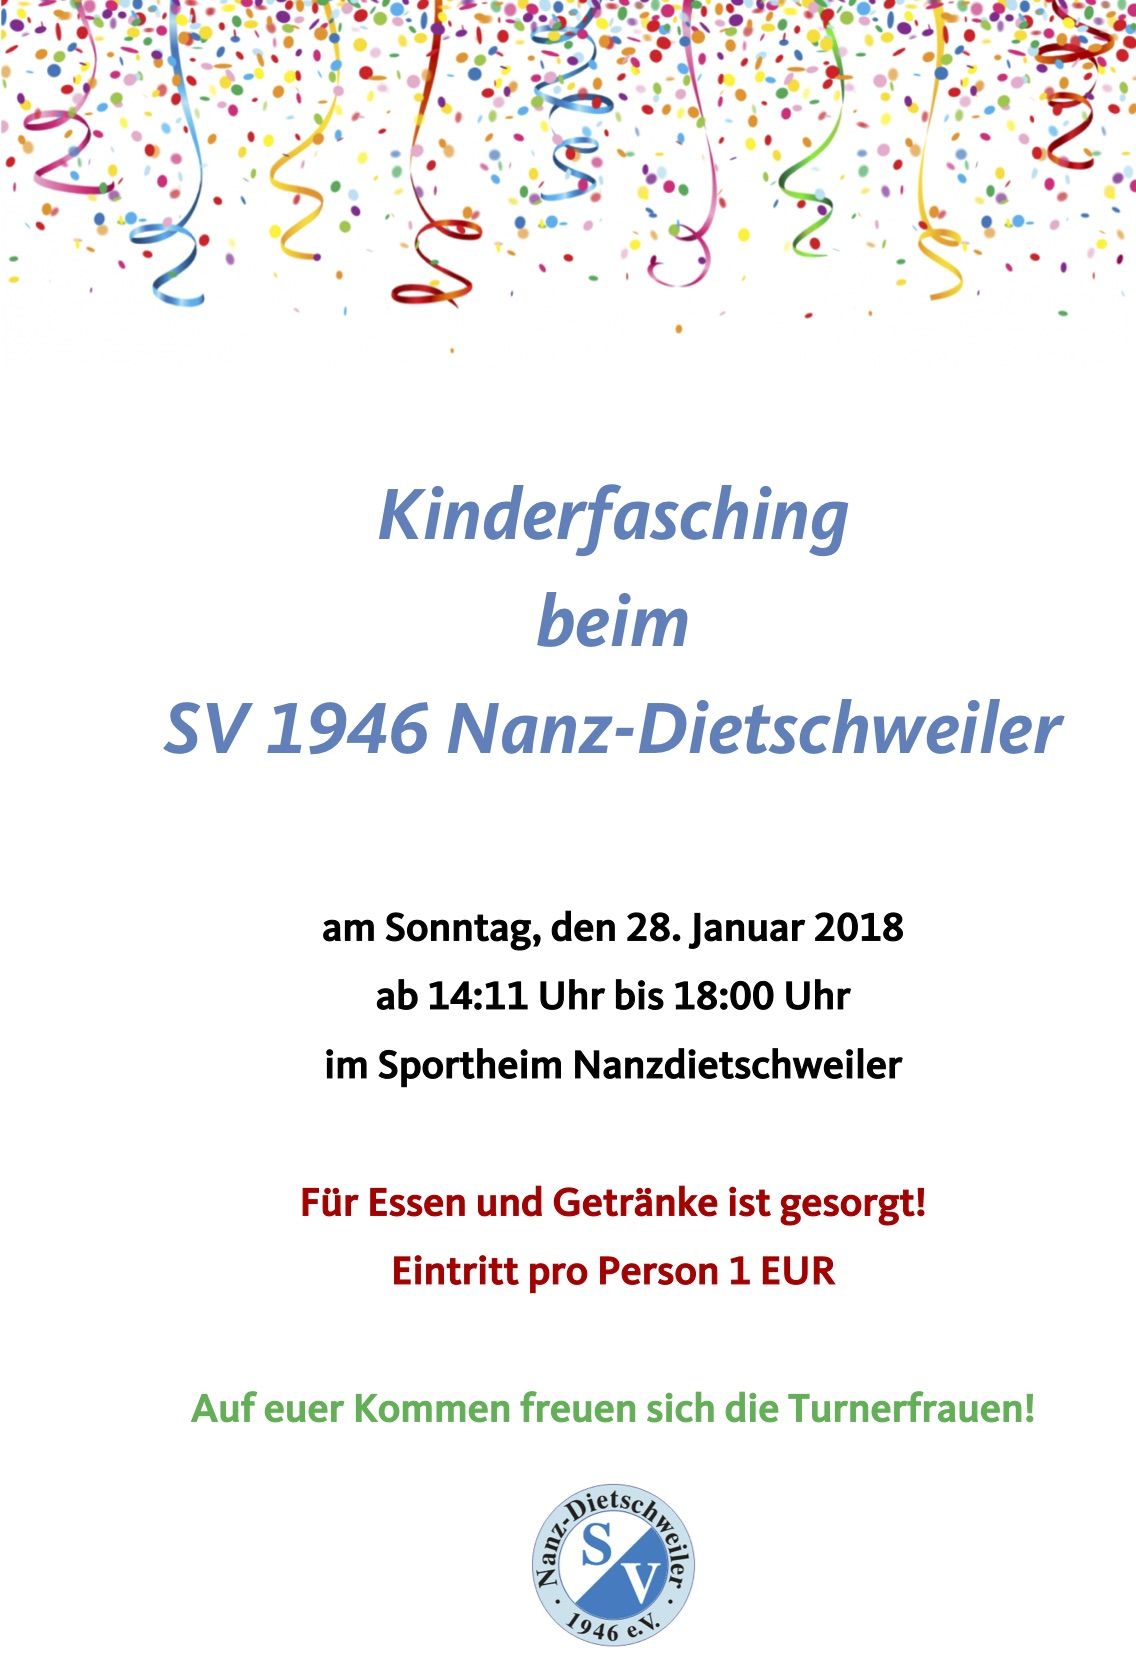 2018 01 28 Flyer Kinderfasching